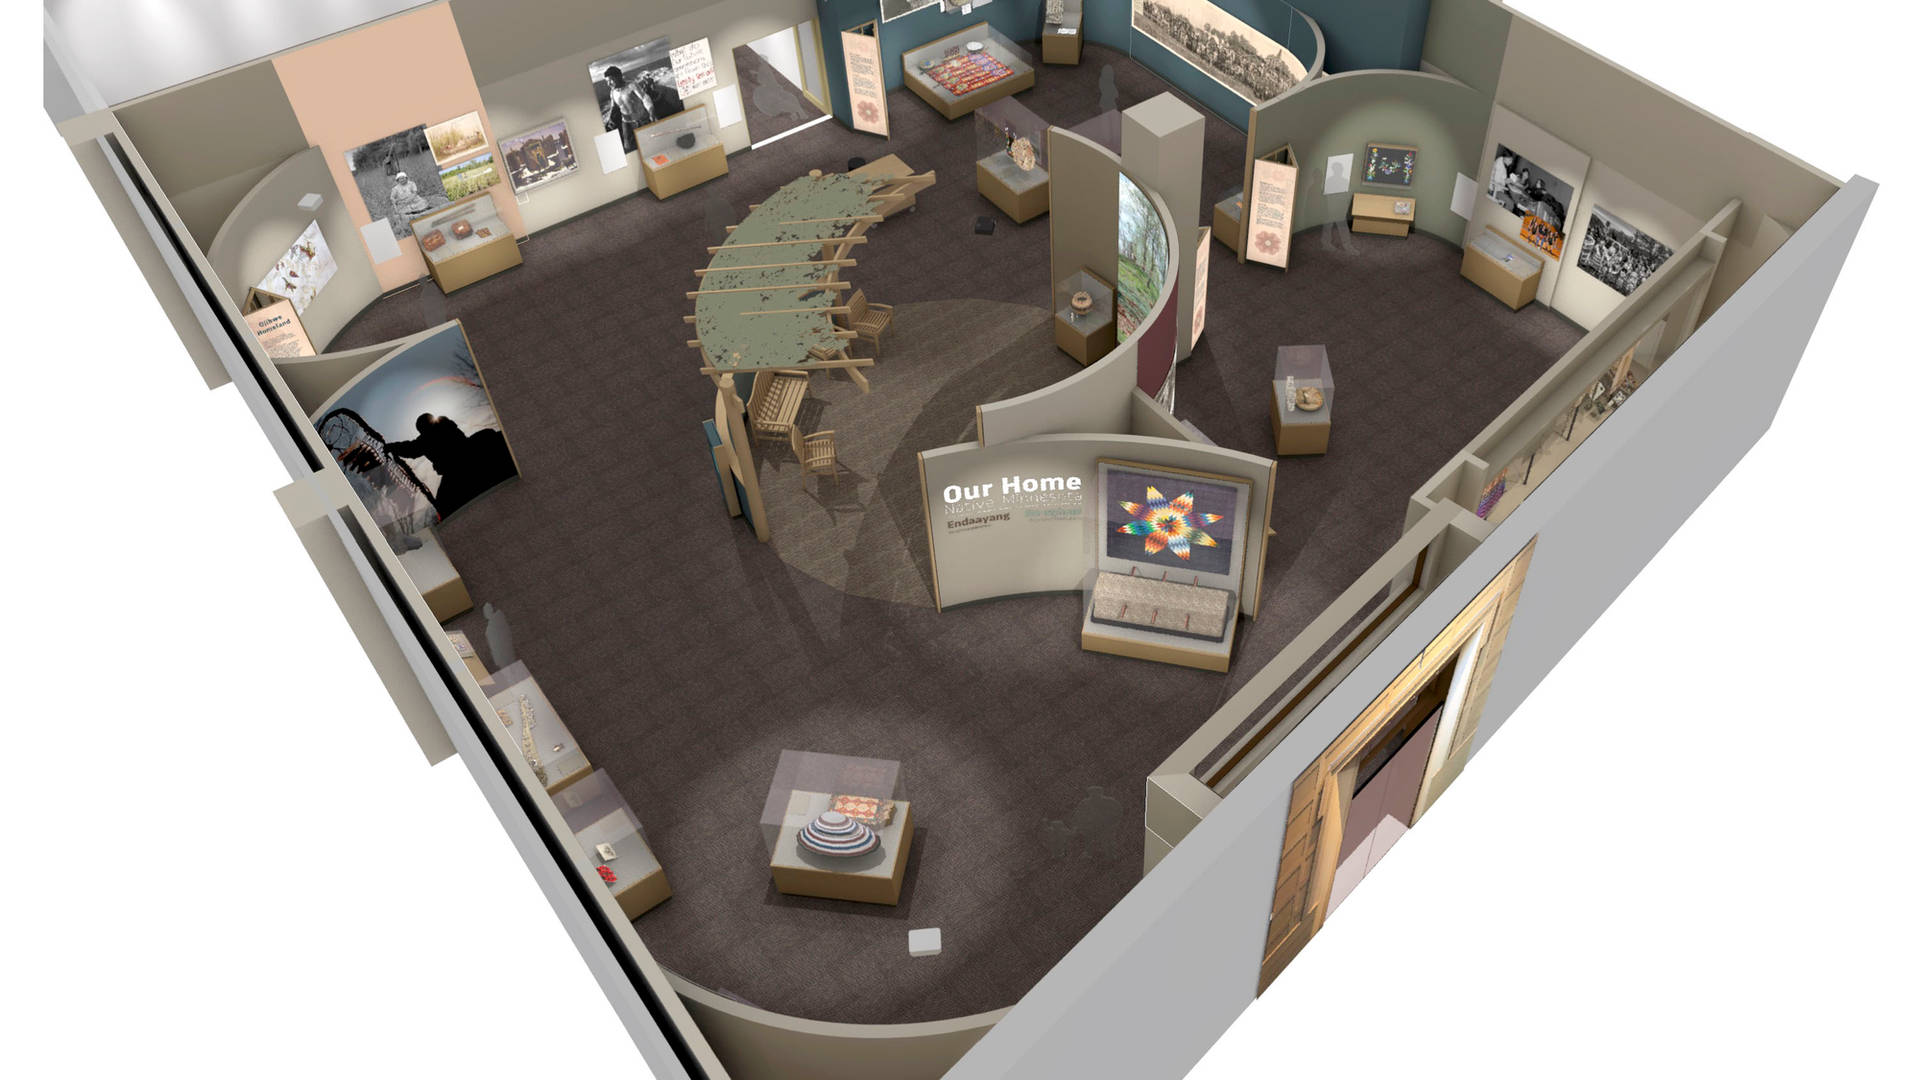 our home native minnesota exhibit 3d rendering and master plan